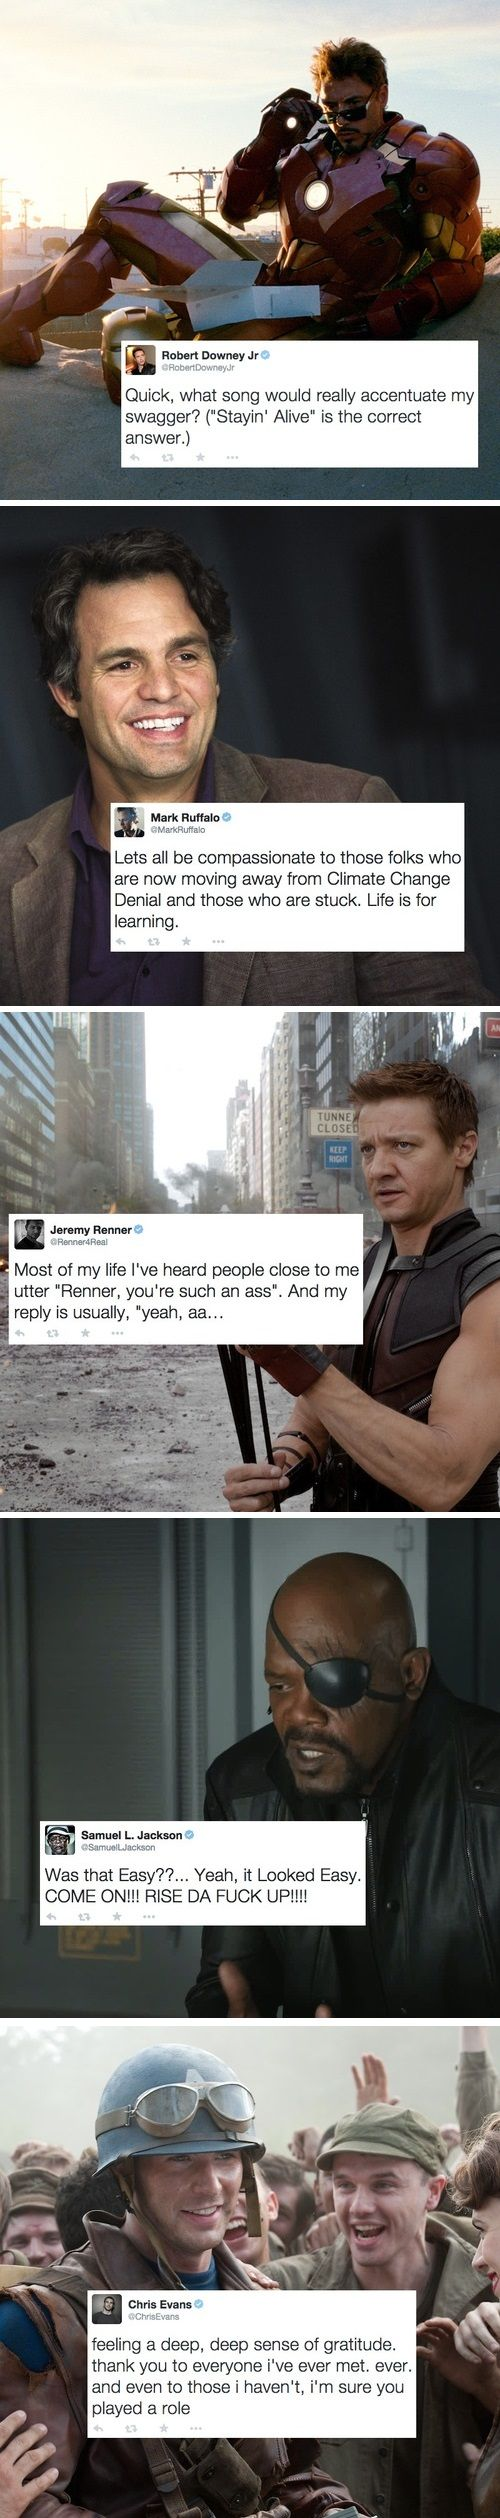 Actors' twitter accounts reveal they're actually their characters: Robert Downey Jr as Tony Stark, Mark Ruffalo as Bruce Banner, Jeremy Renner as Clint Barton, Samuel Jackson as Nick Fury and Chris Evans as Steve Rogers.